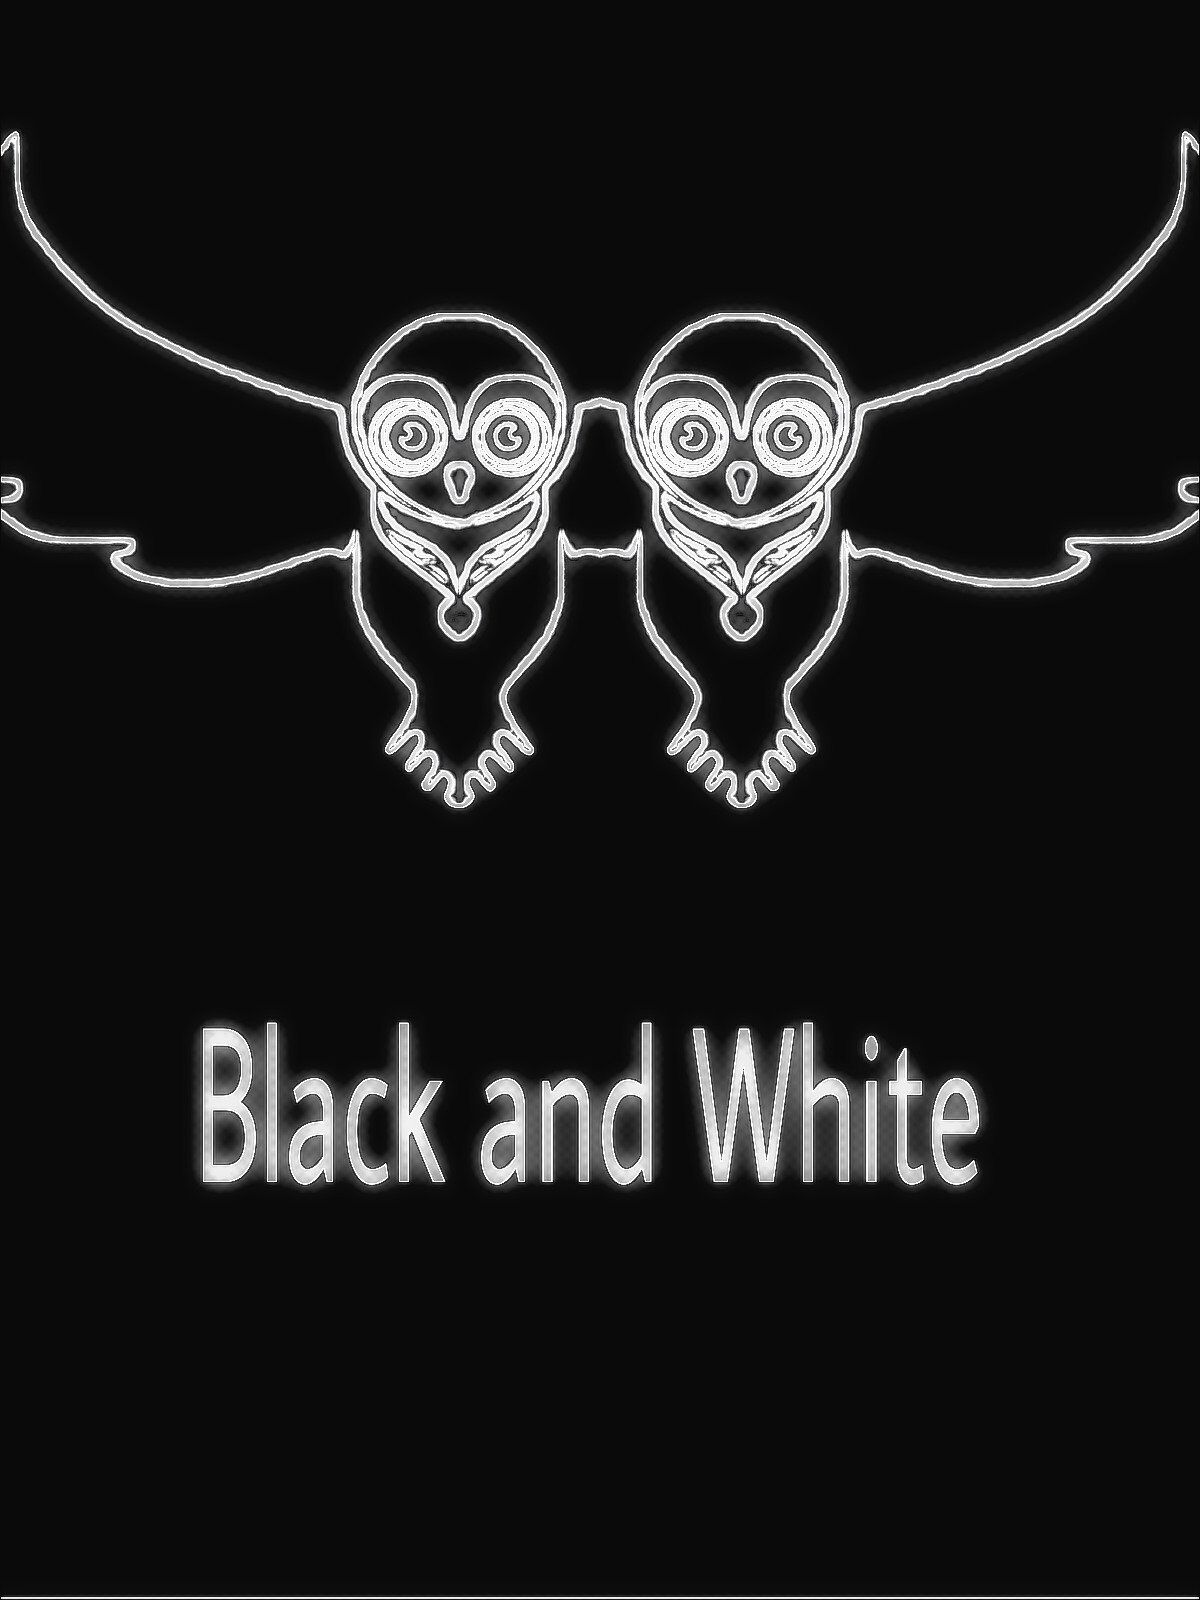 Black and White (2017)